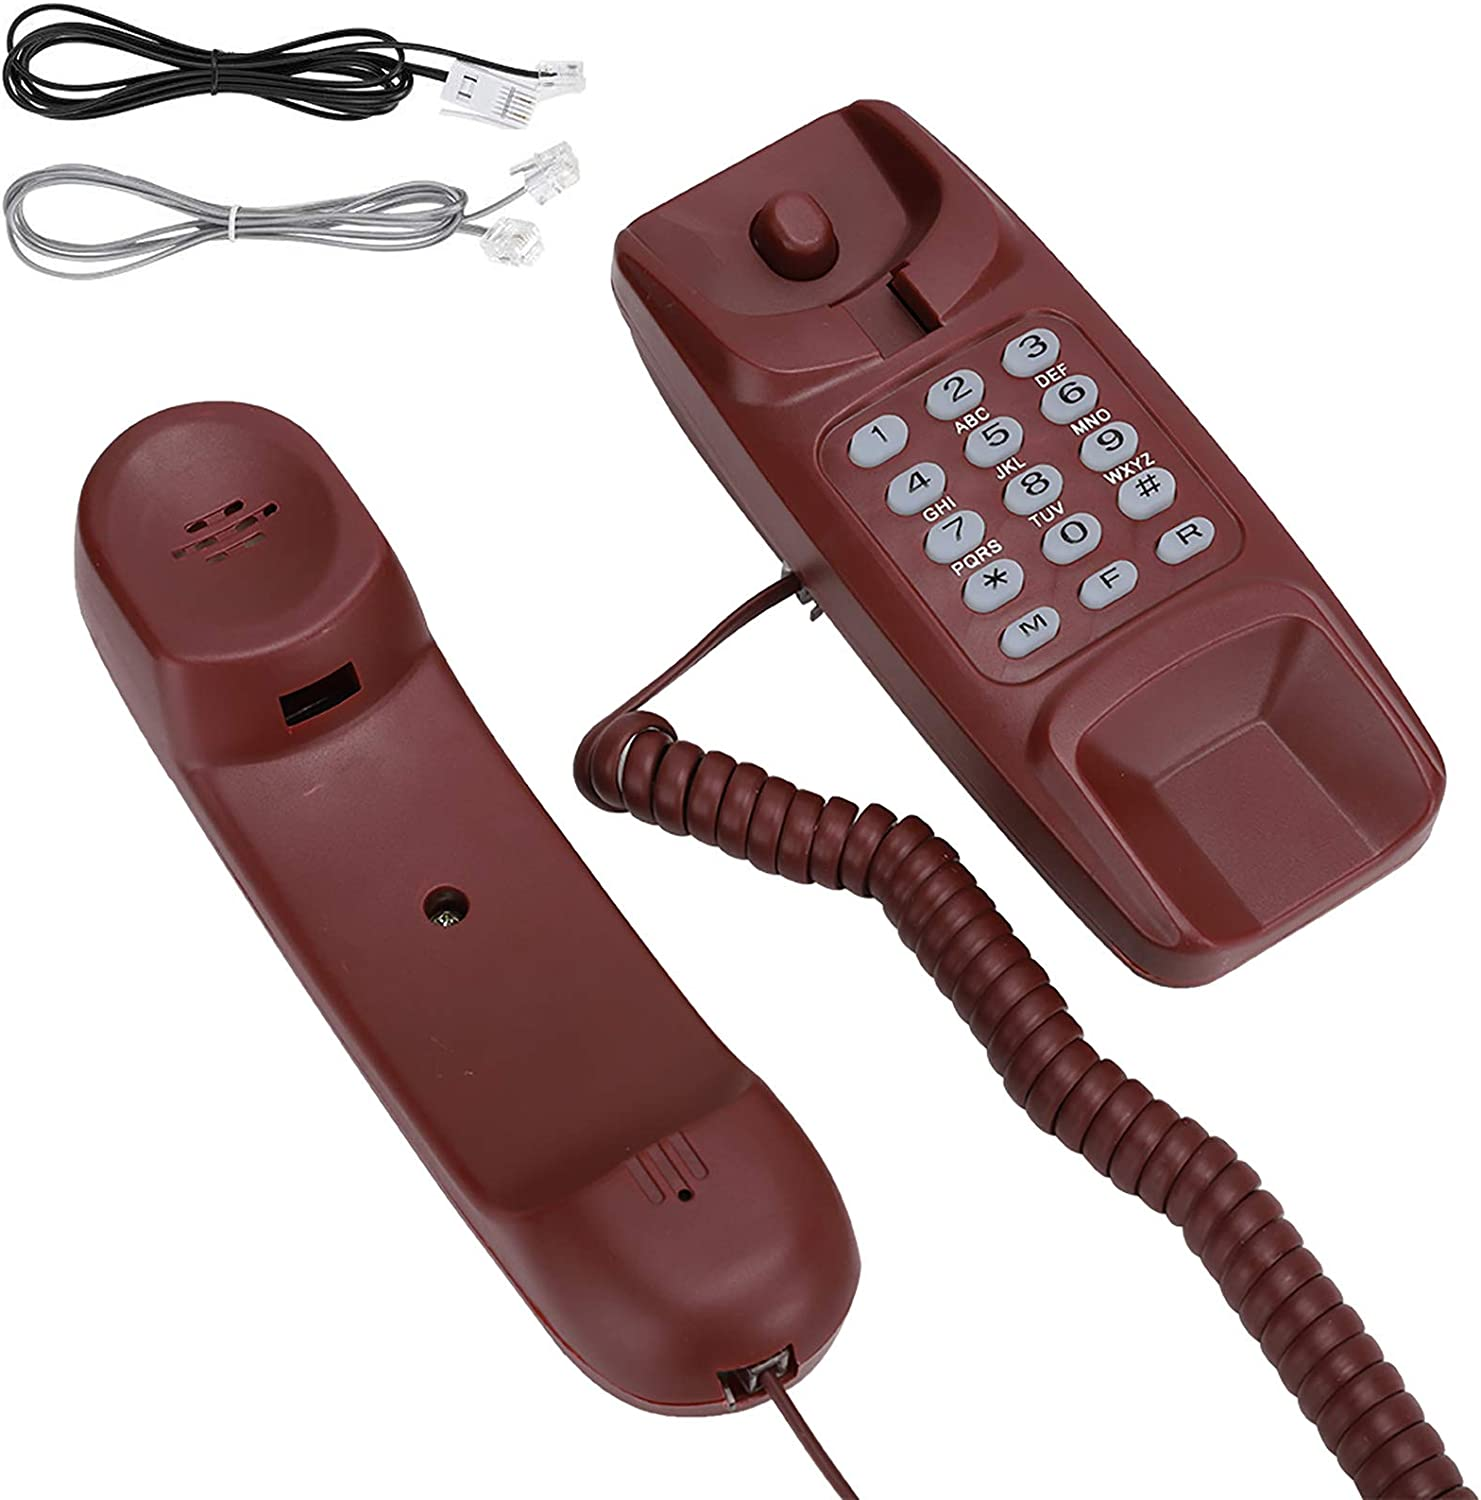 Office Business Resistant to Wear Red Suit for Home Corded Telephone Landline Telephone Wall Mounted Modern Corded Telephone House Phone Noise Cancelling Hotel